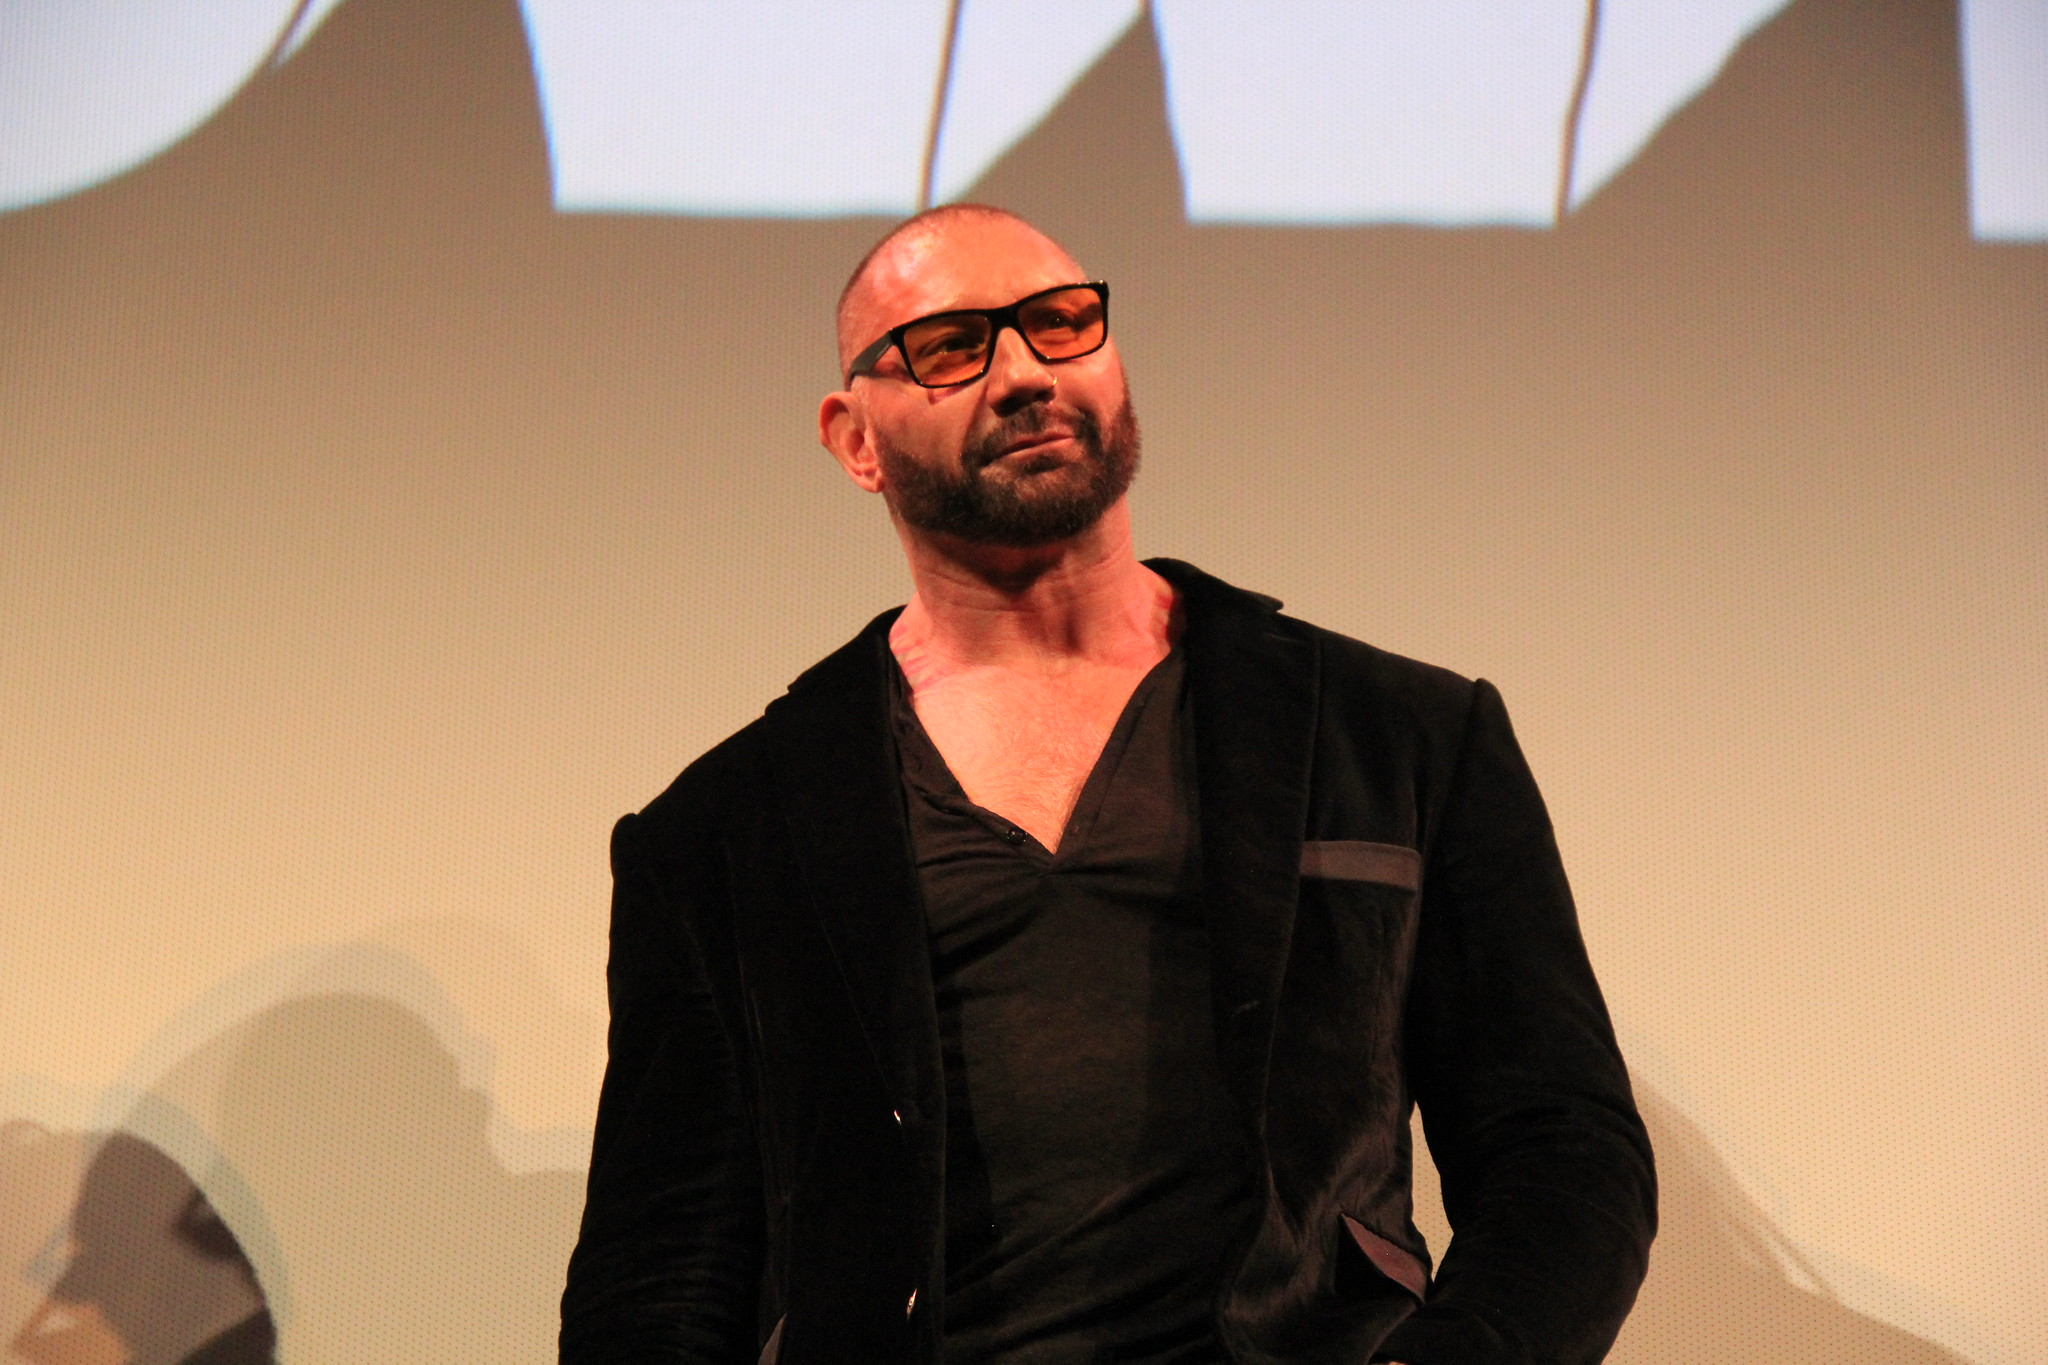 Dave Bautista facts